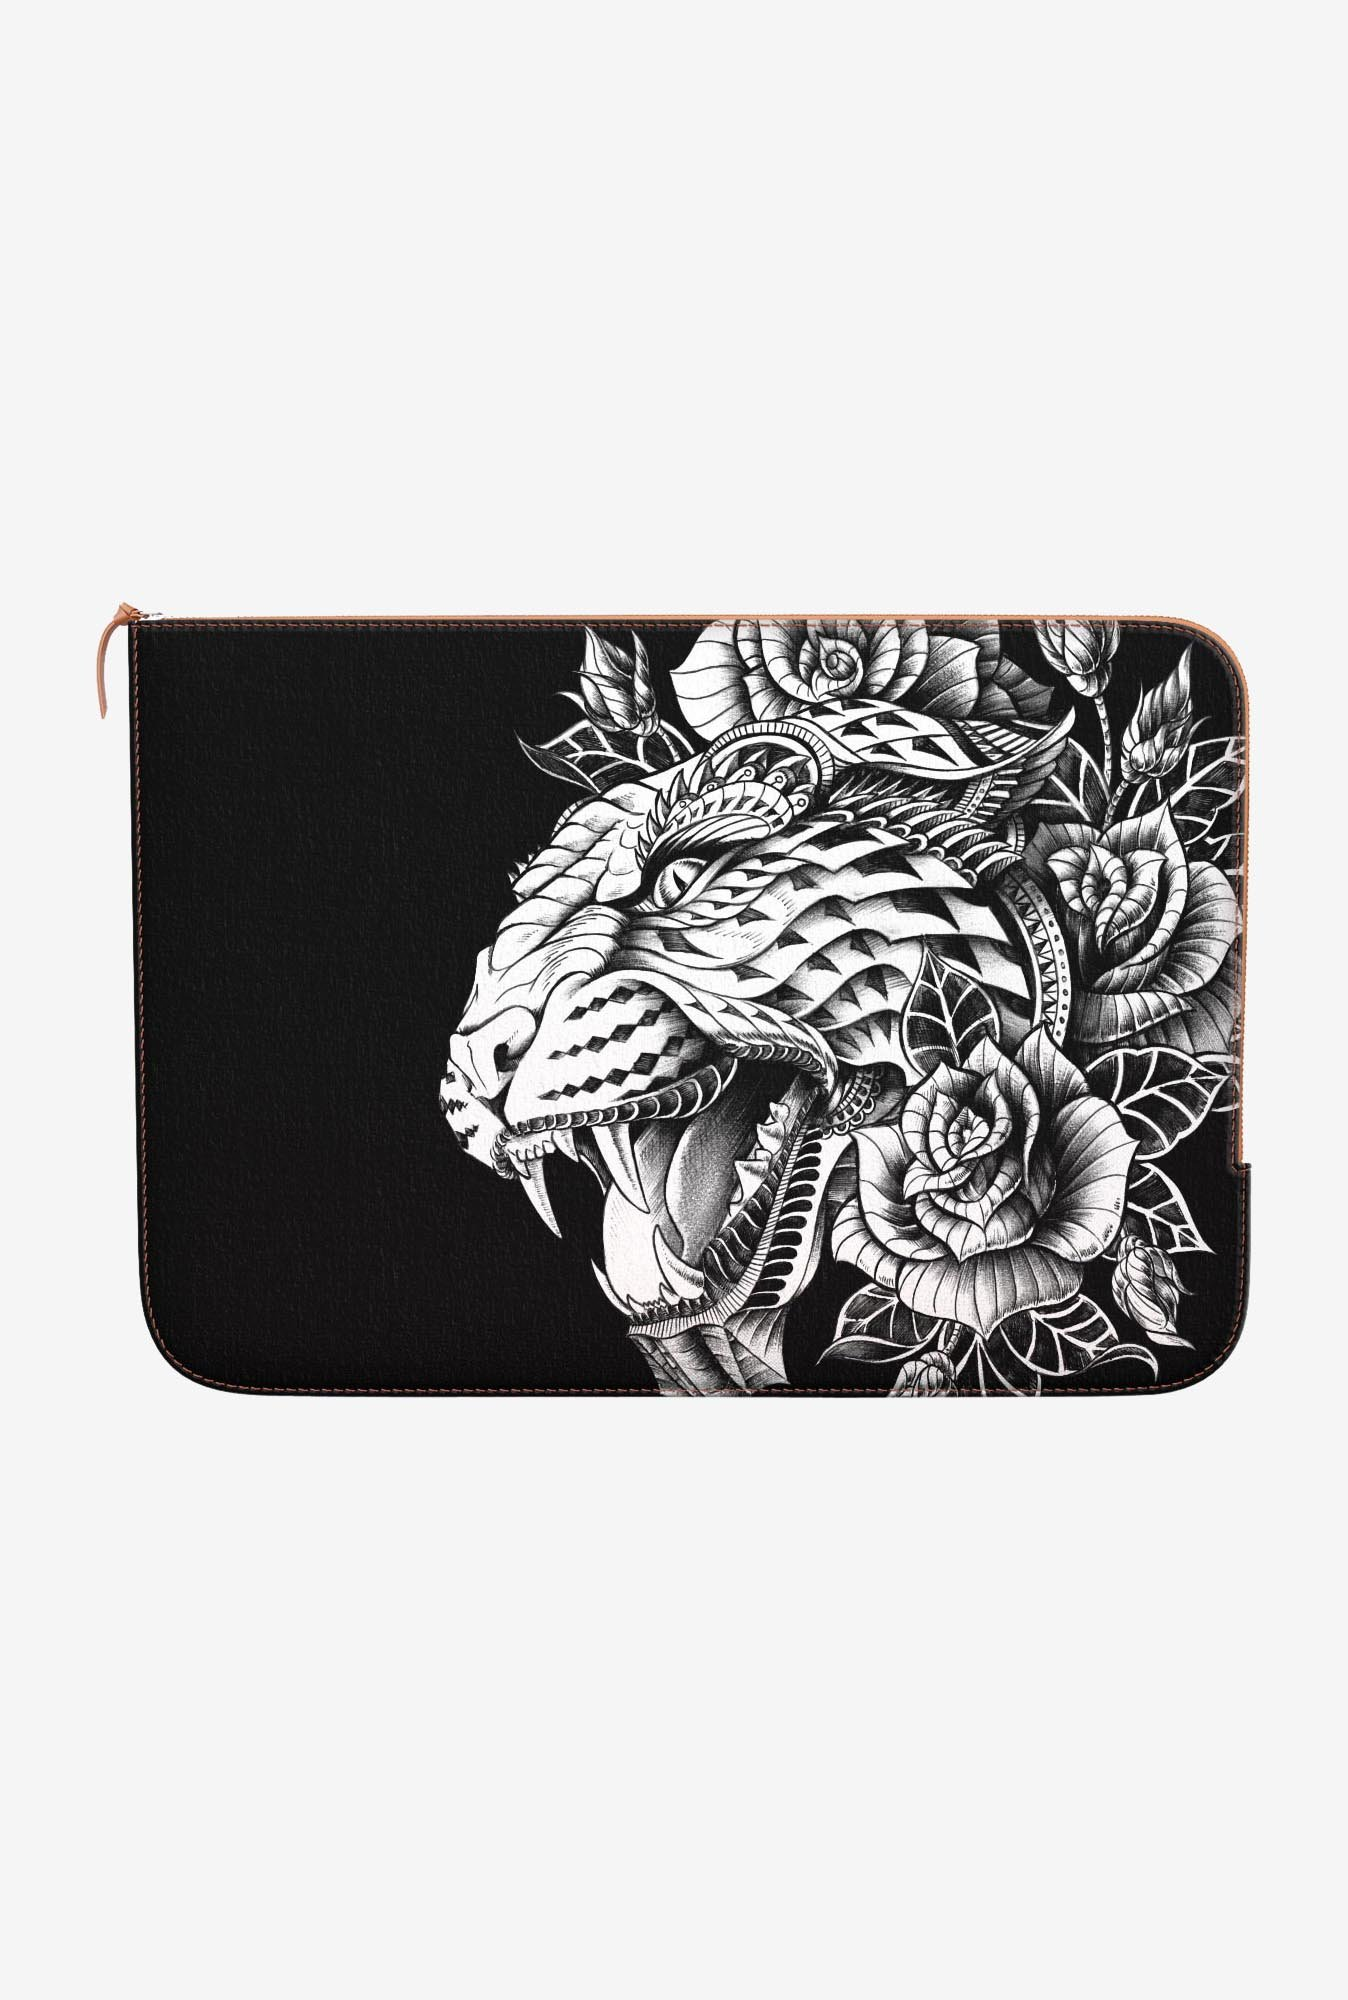 DailyObjects Ornate Leopard MacBook Air 11 Zippered Sleeve